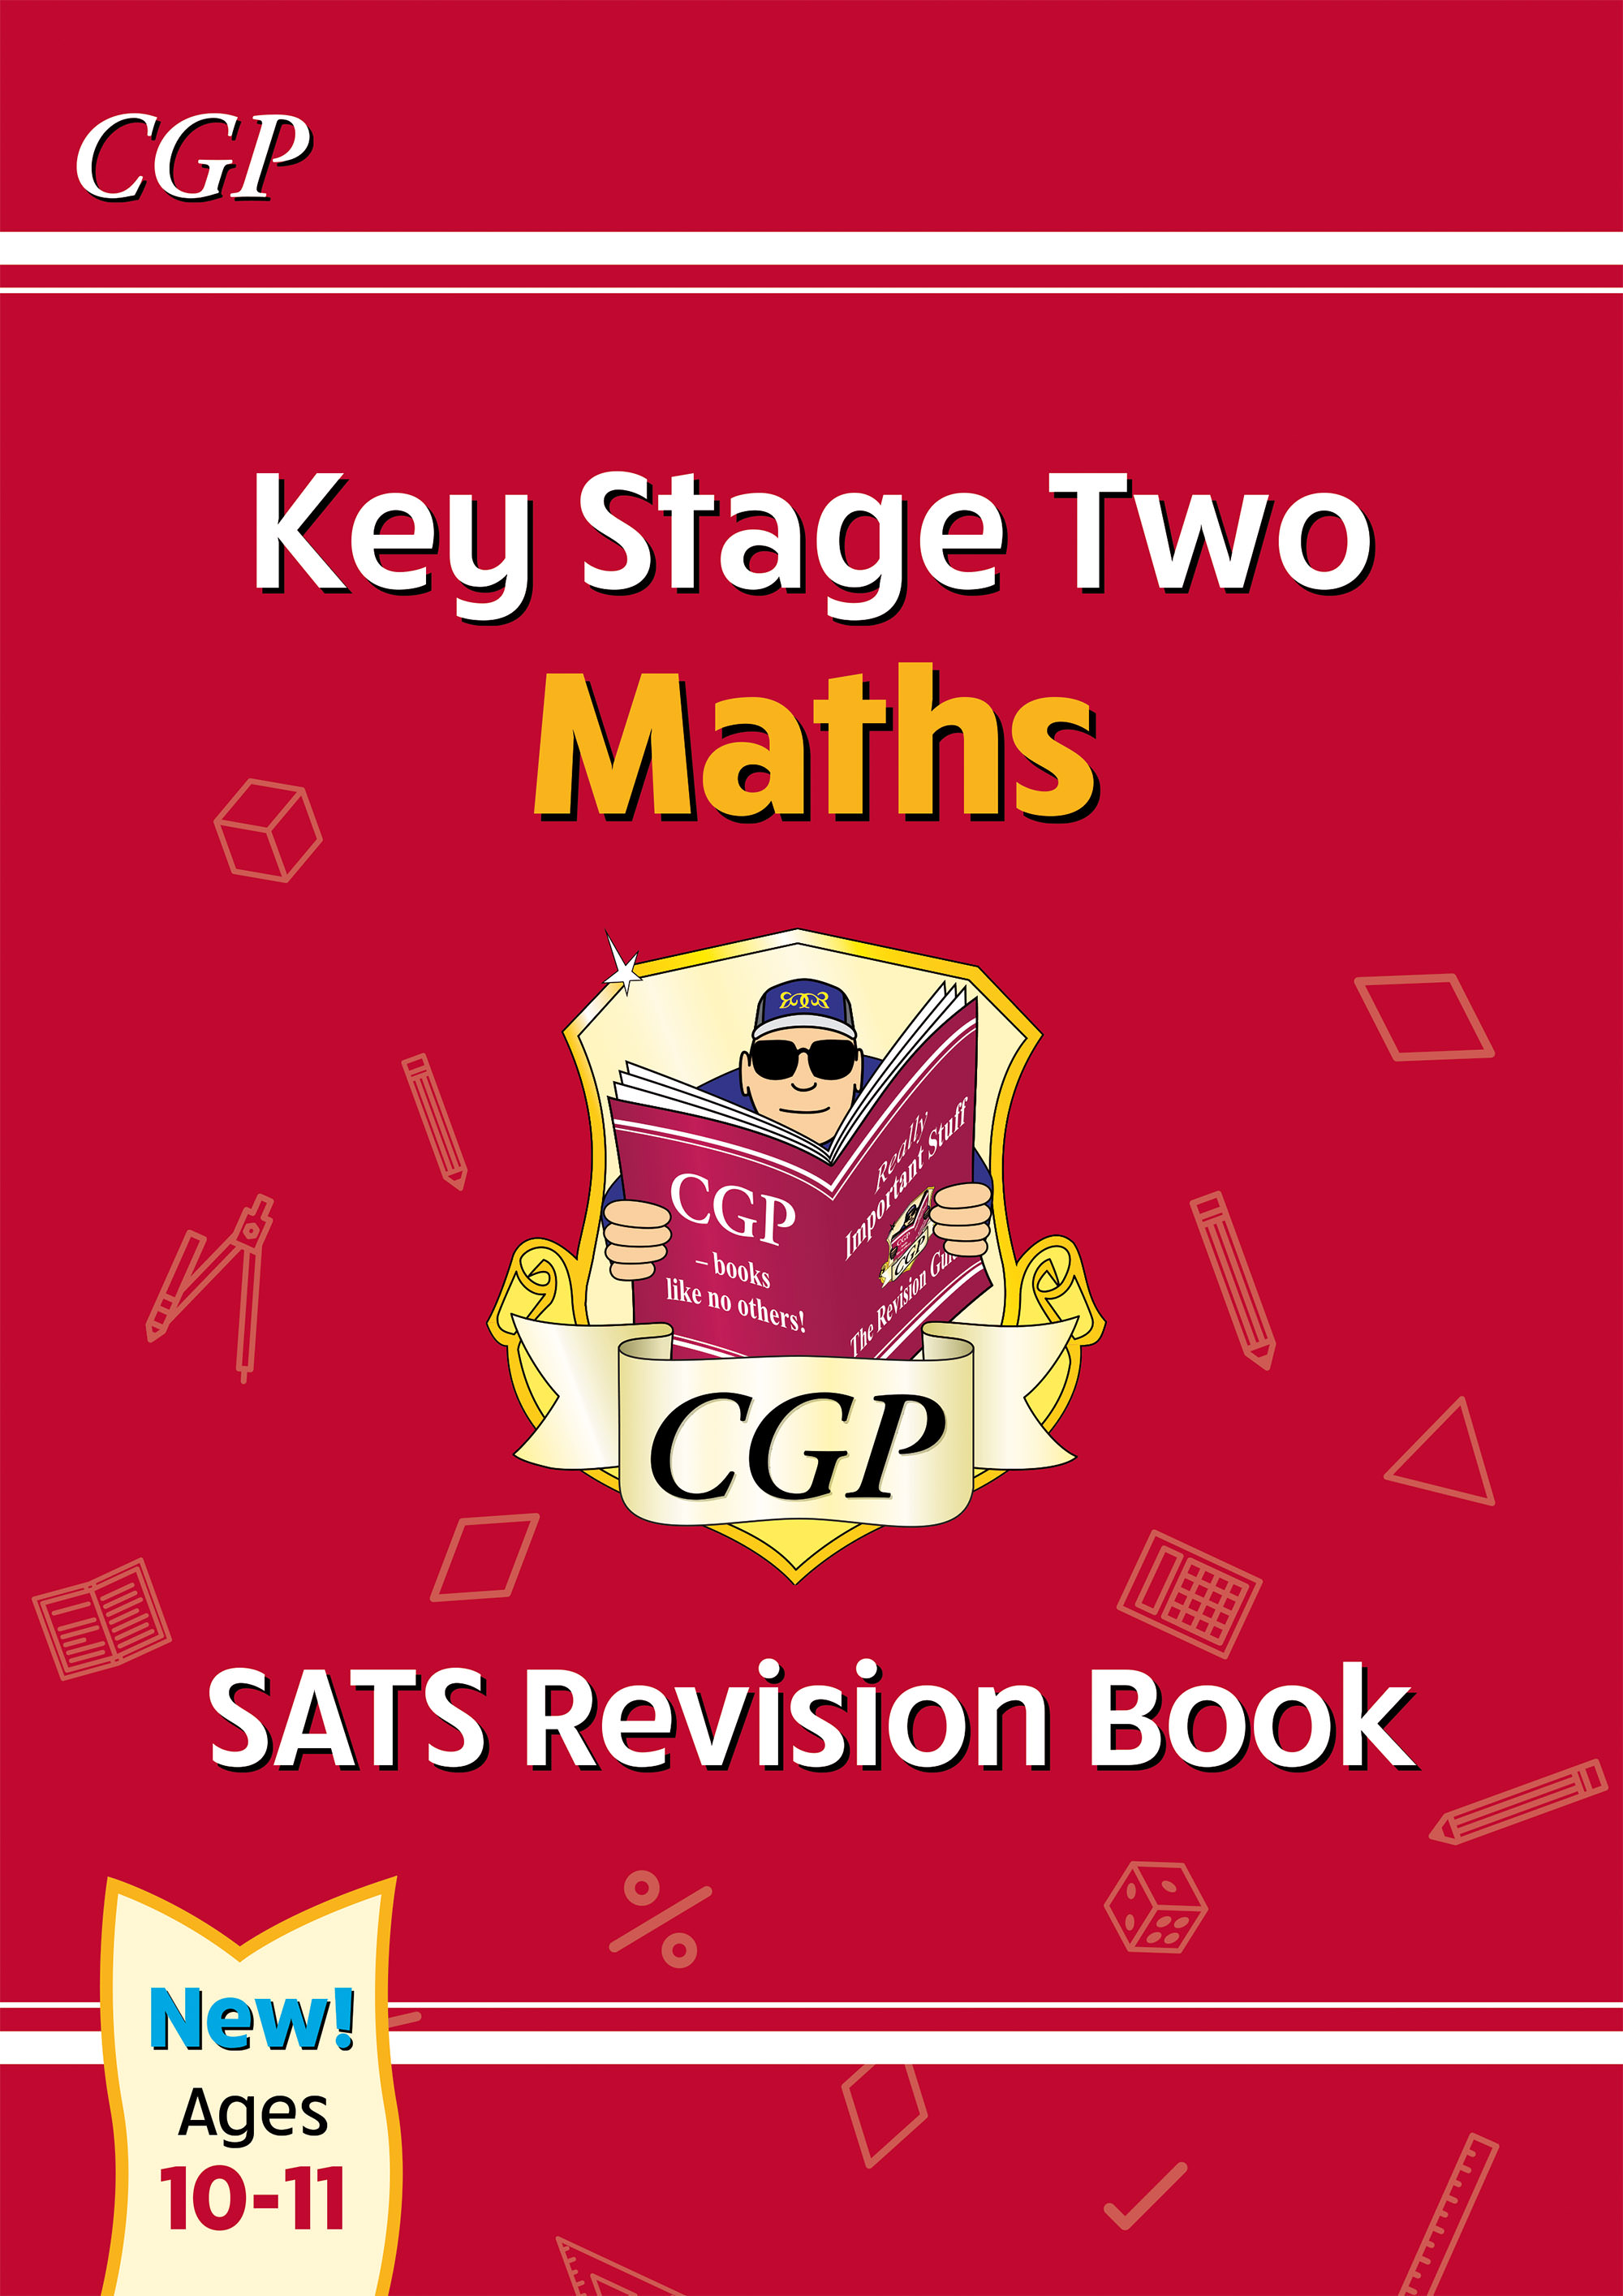 MLFR23DK - New KS2 Maths SATS Revision Book - Ages 10-11 (for the 2021 tests)